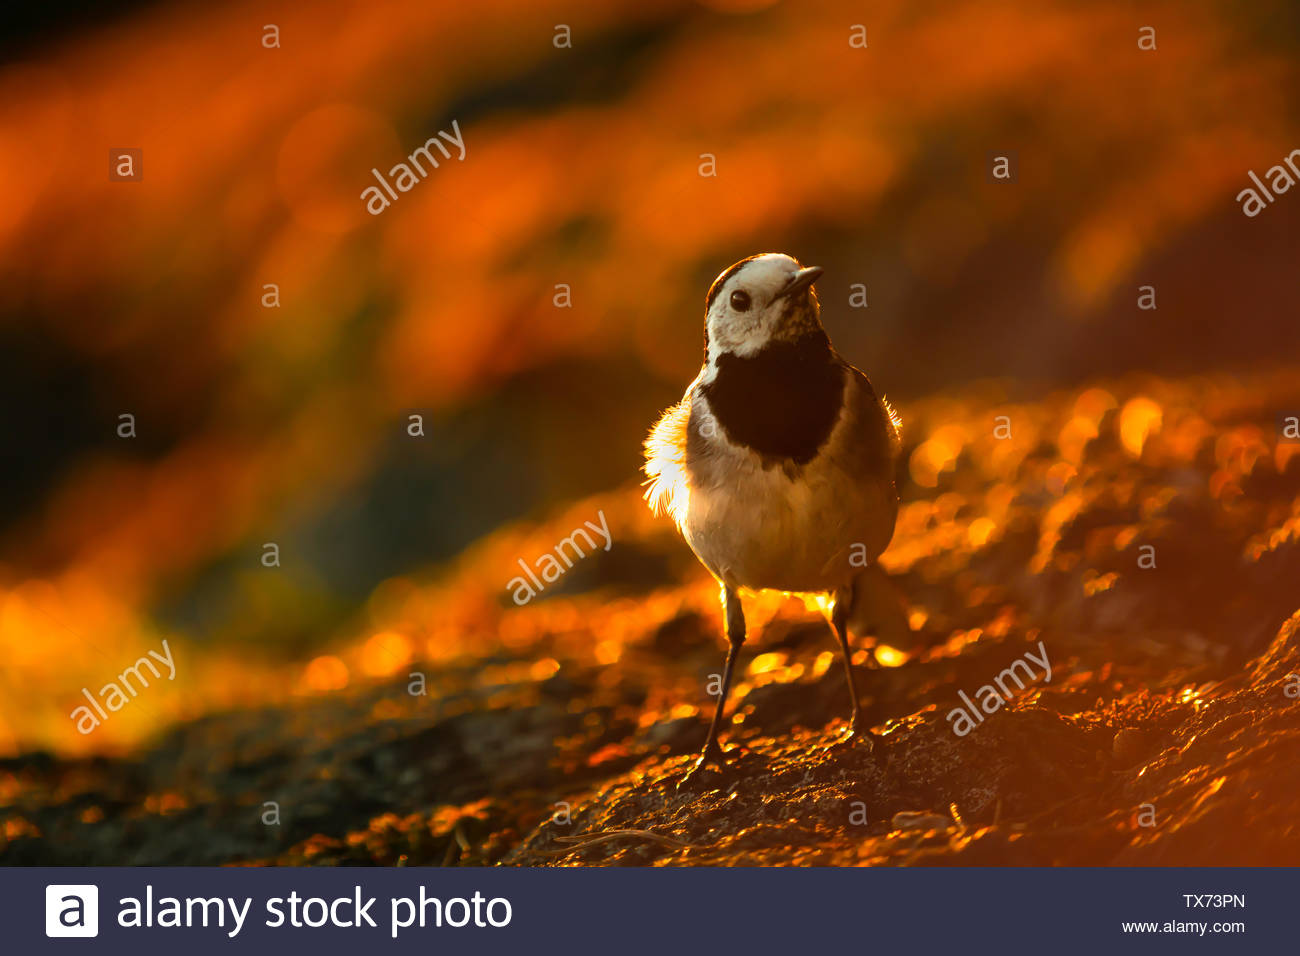 Wagtail - Stock Image